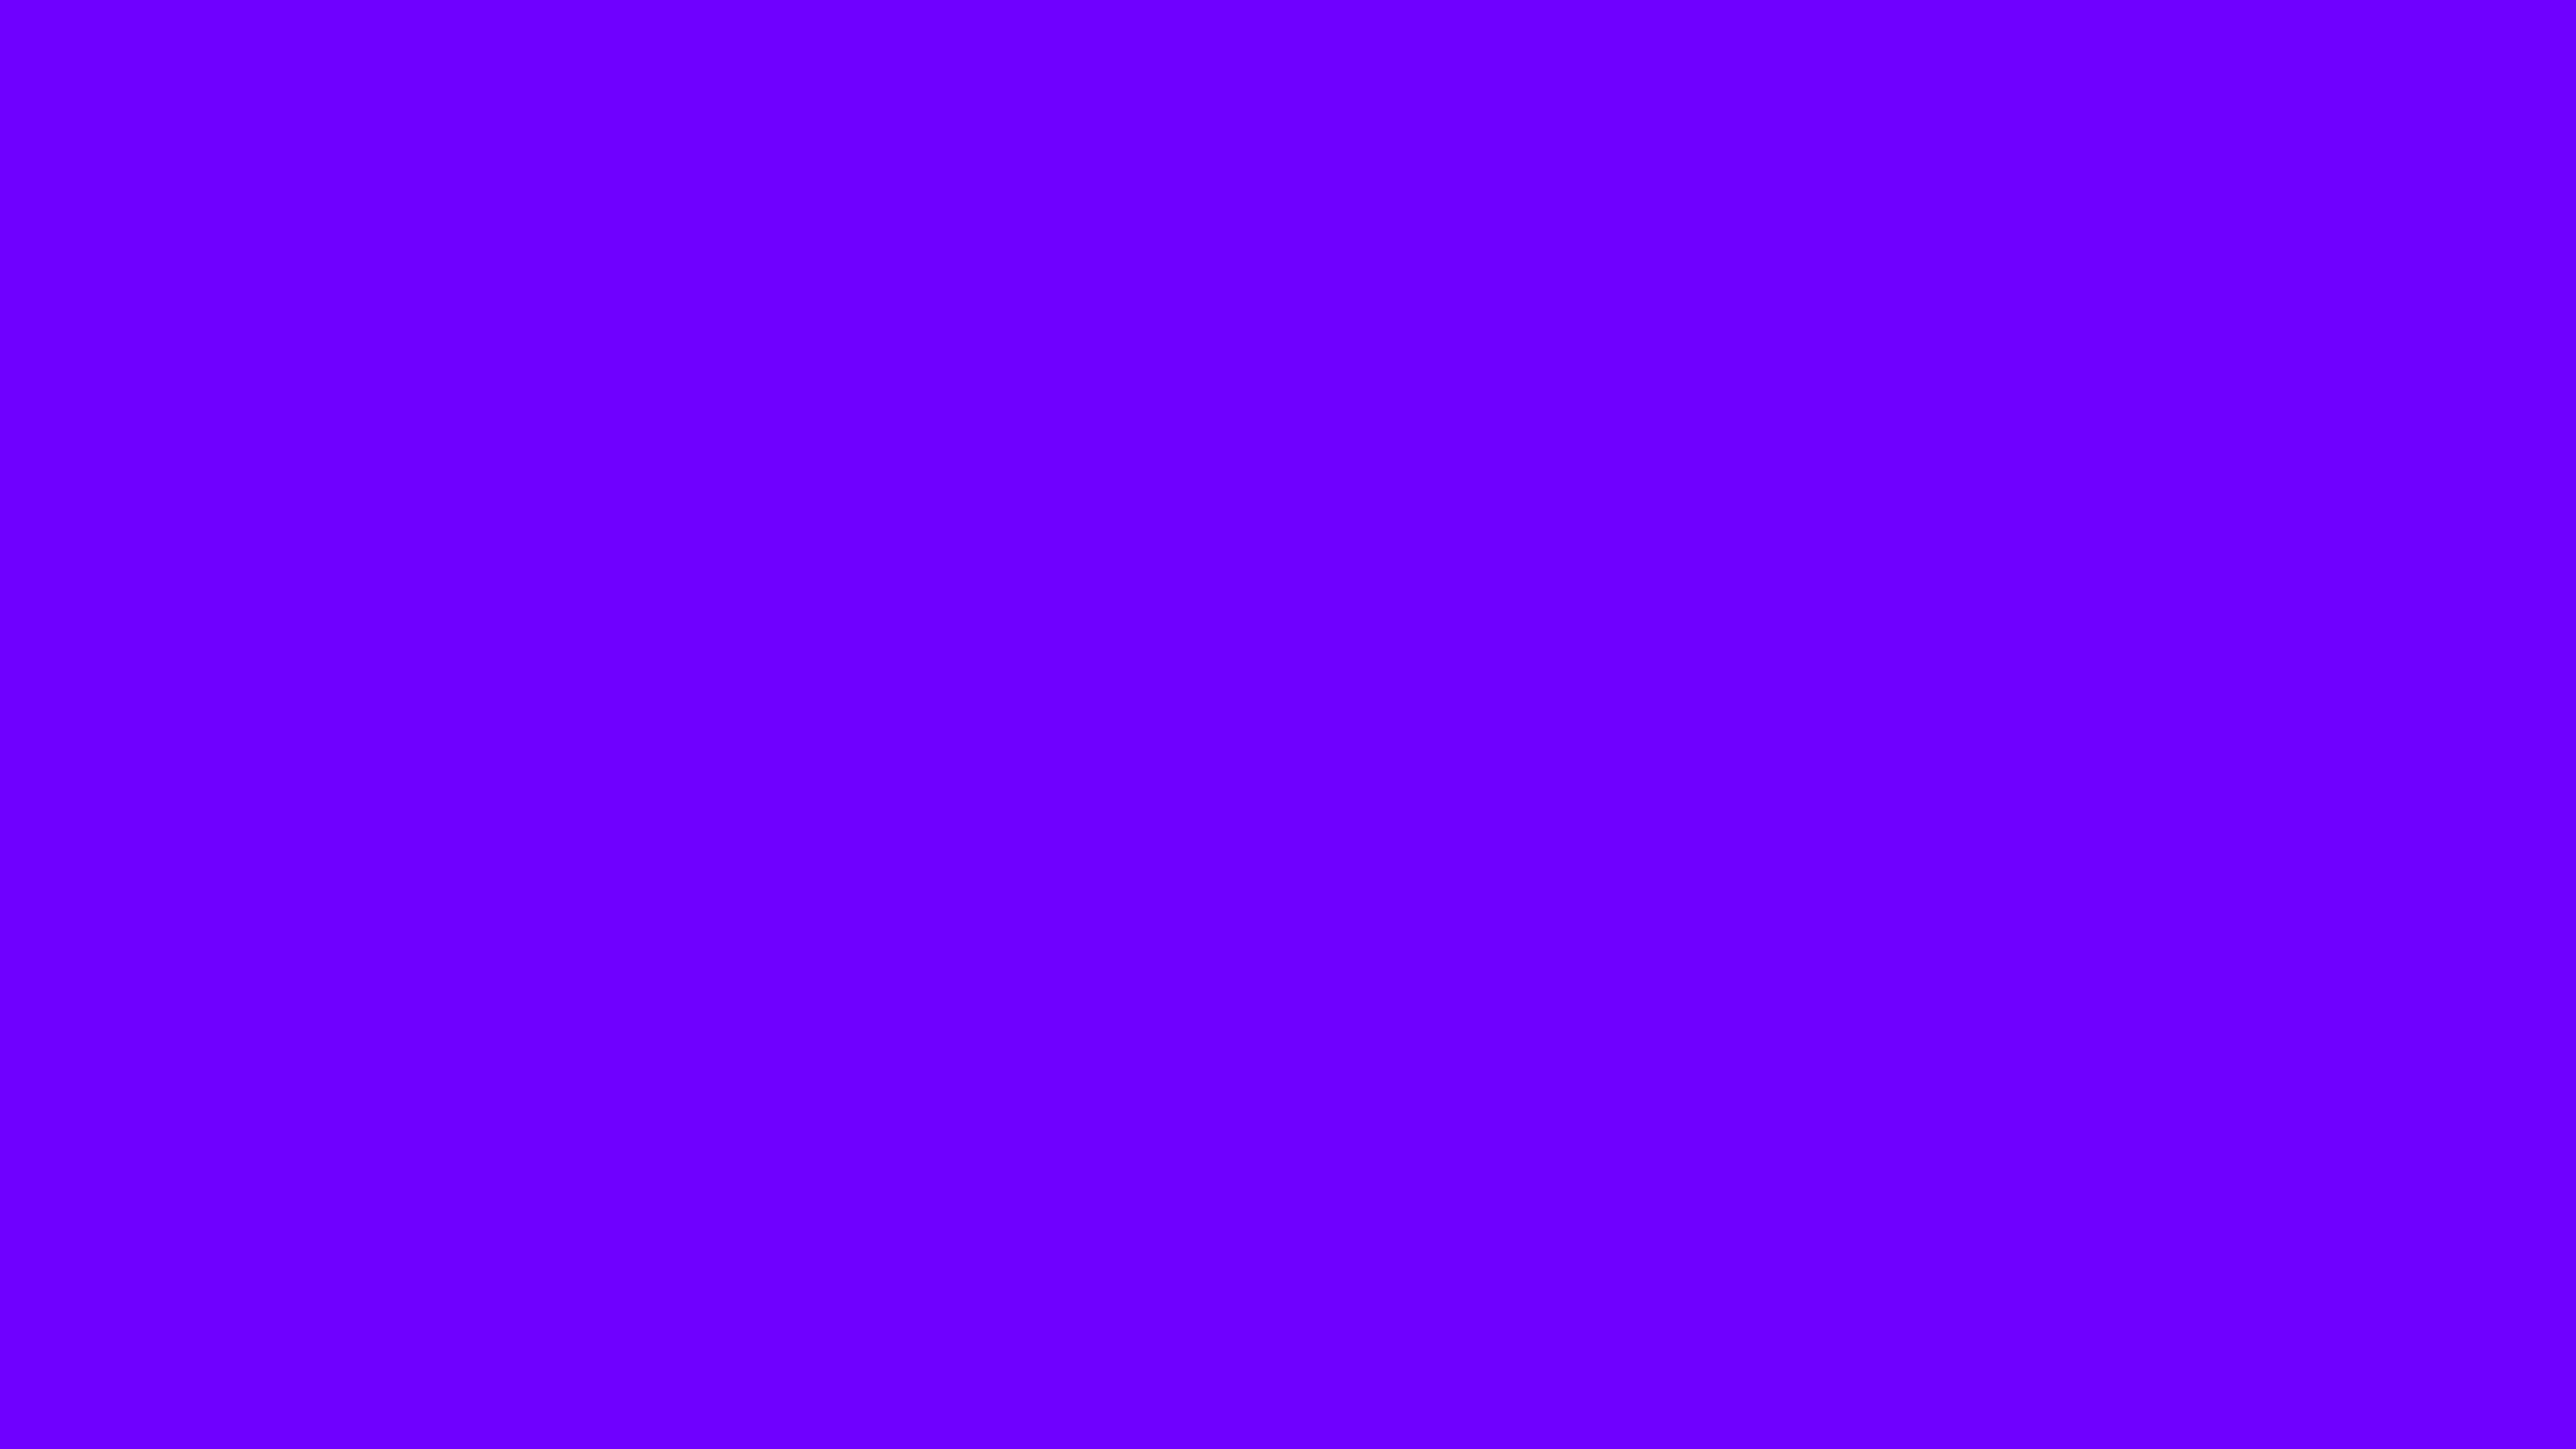 7680x4320 Electric Indigo Solid Color Background